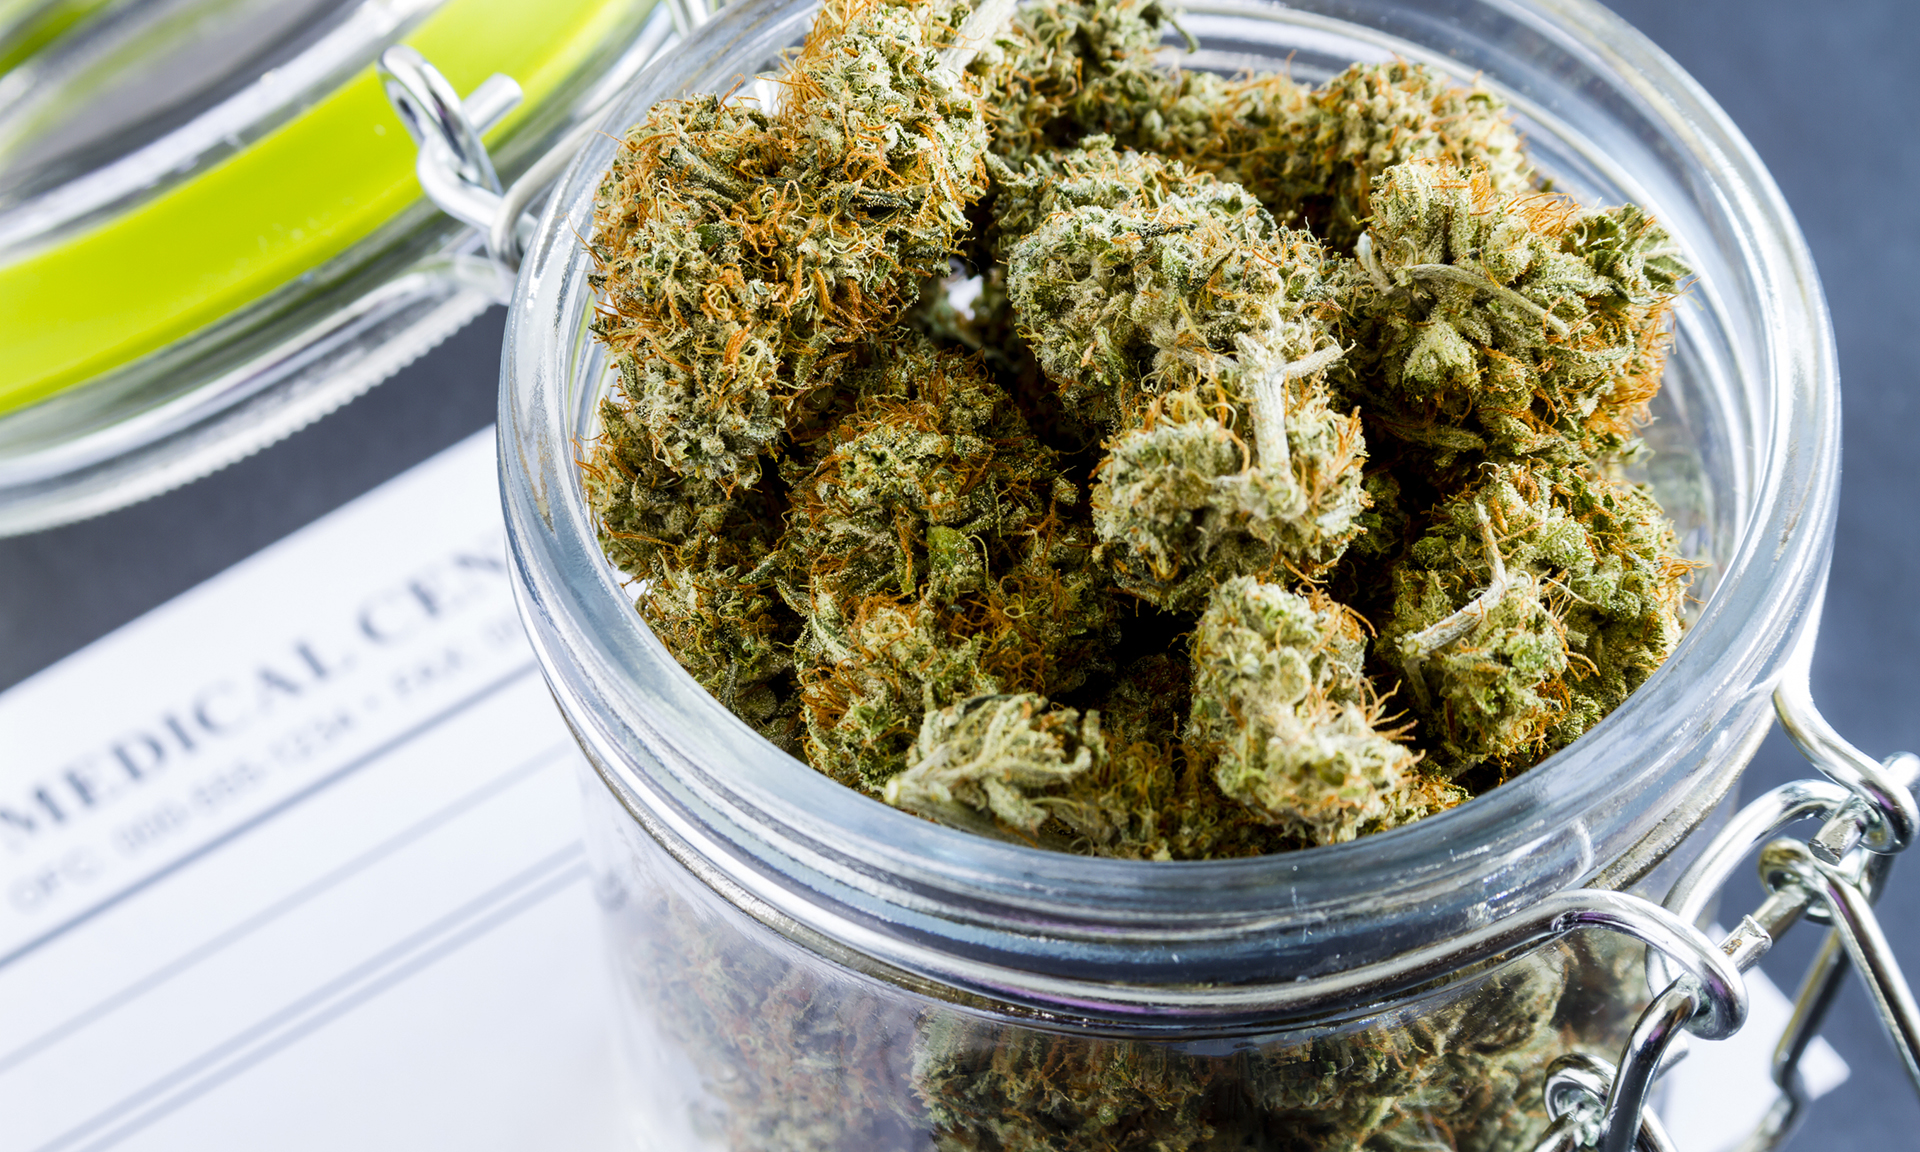 Cannabis buds in a glass container